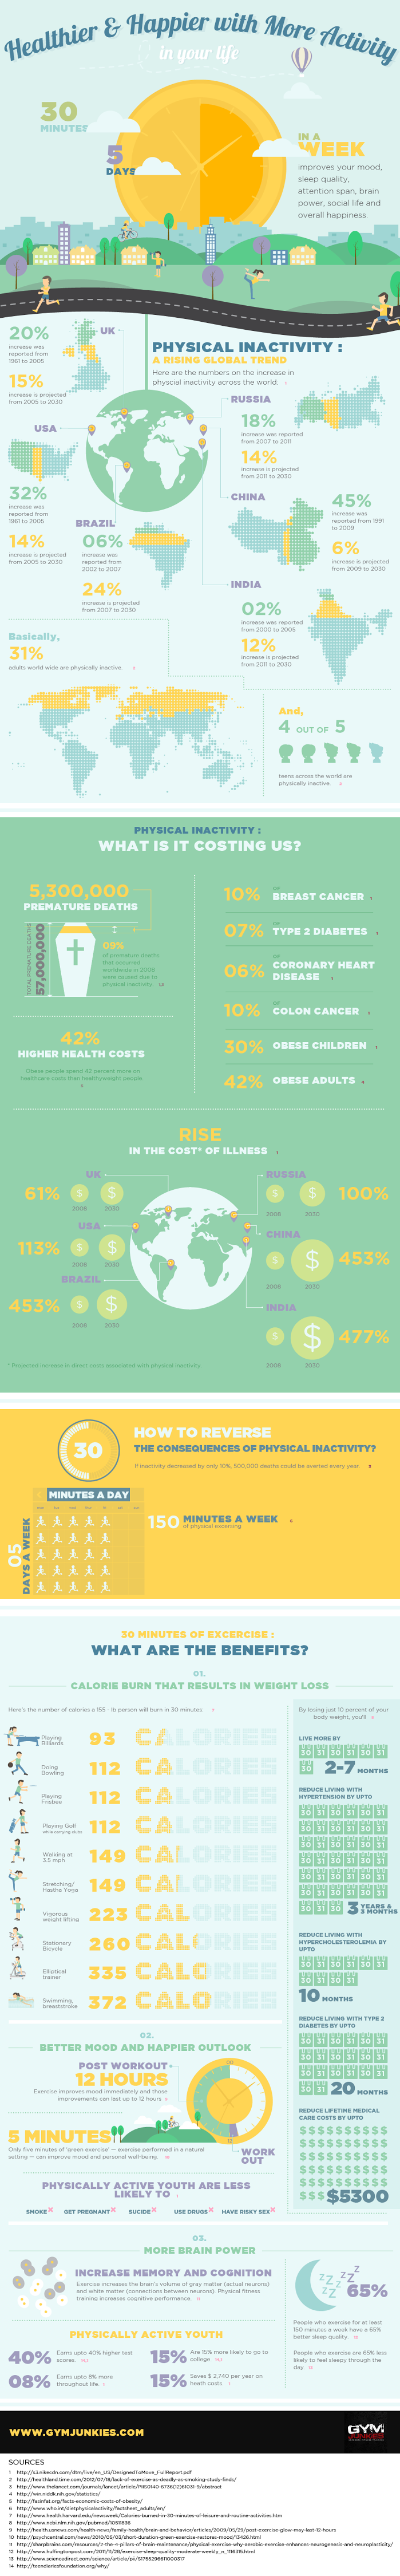 Healthier and Happier With More Activity In Your Life #infographic